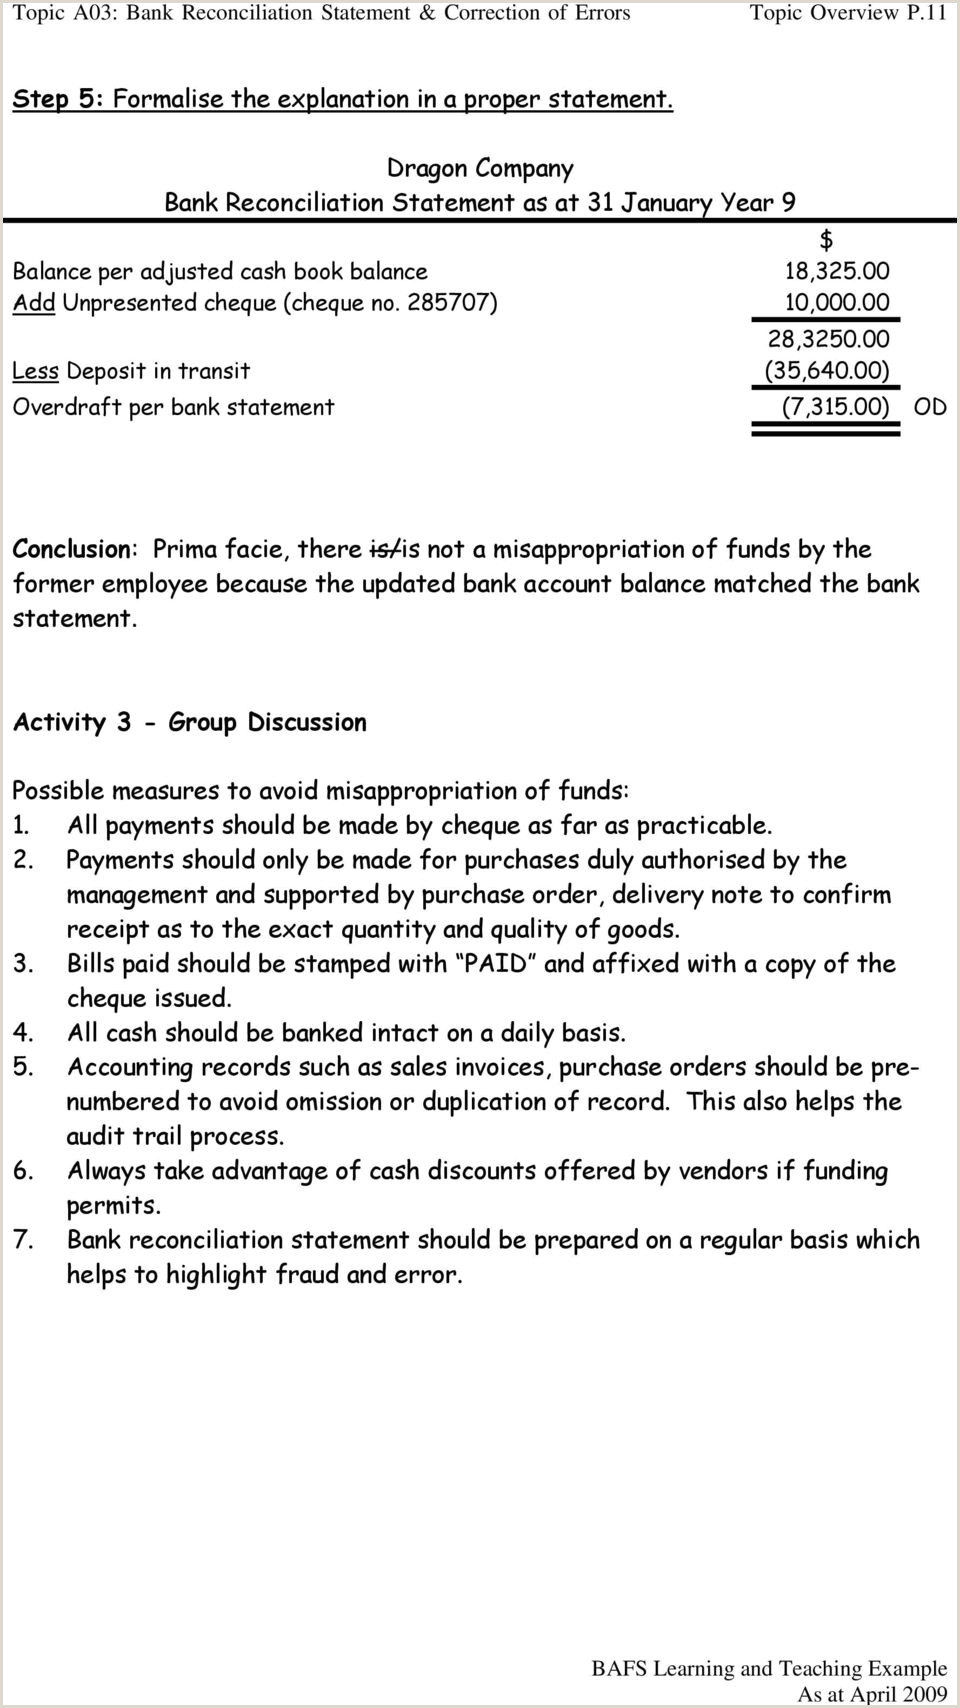 Accounting Coach Bank Reconciliation topic A03 Bank Reconciliation Statement & Correction Of